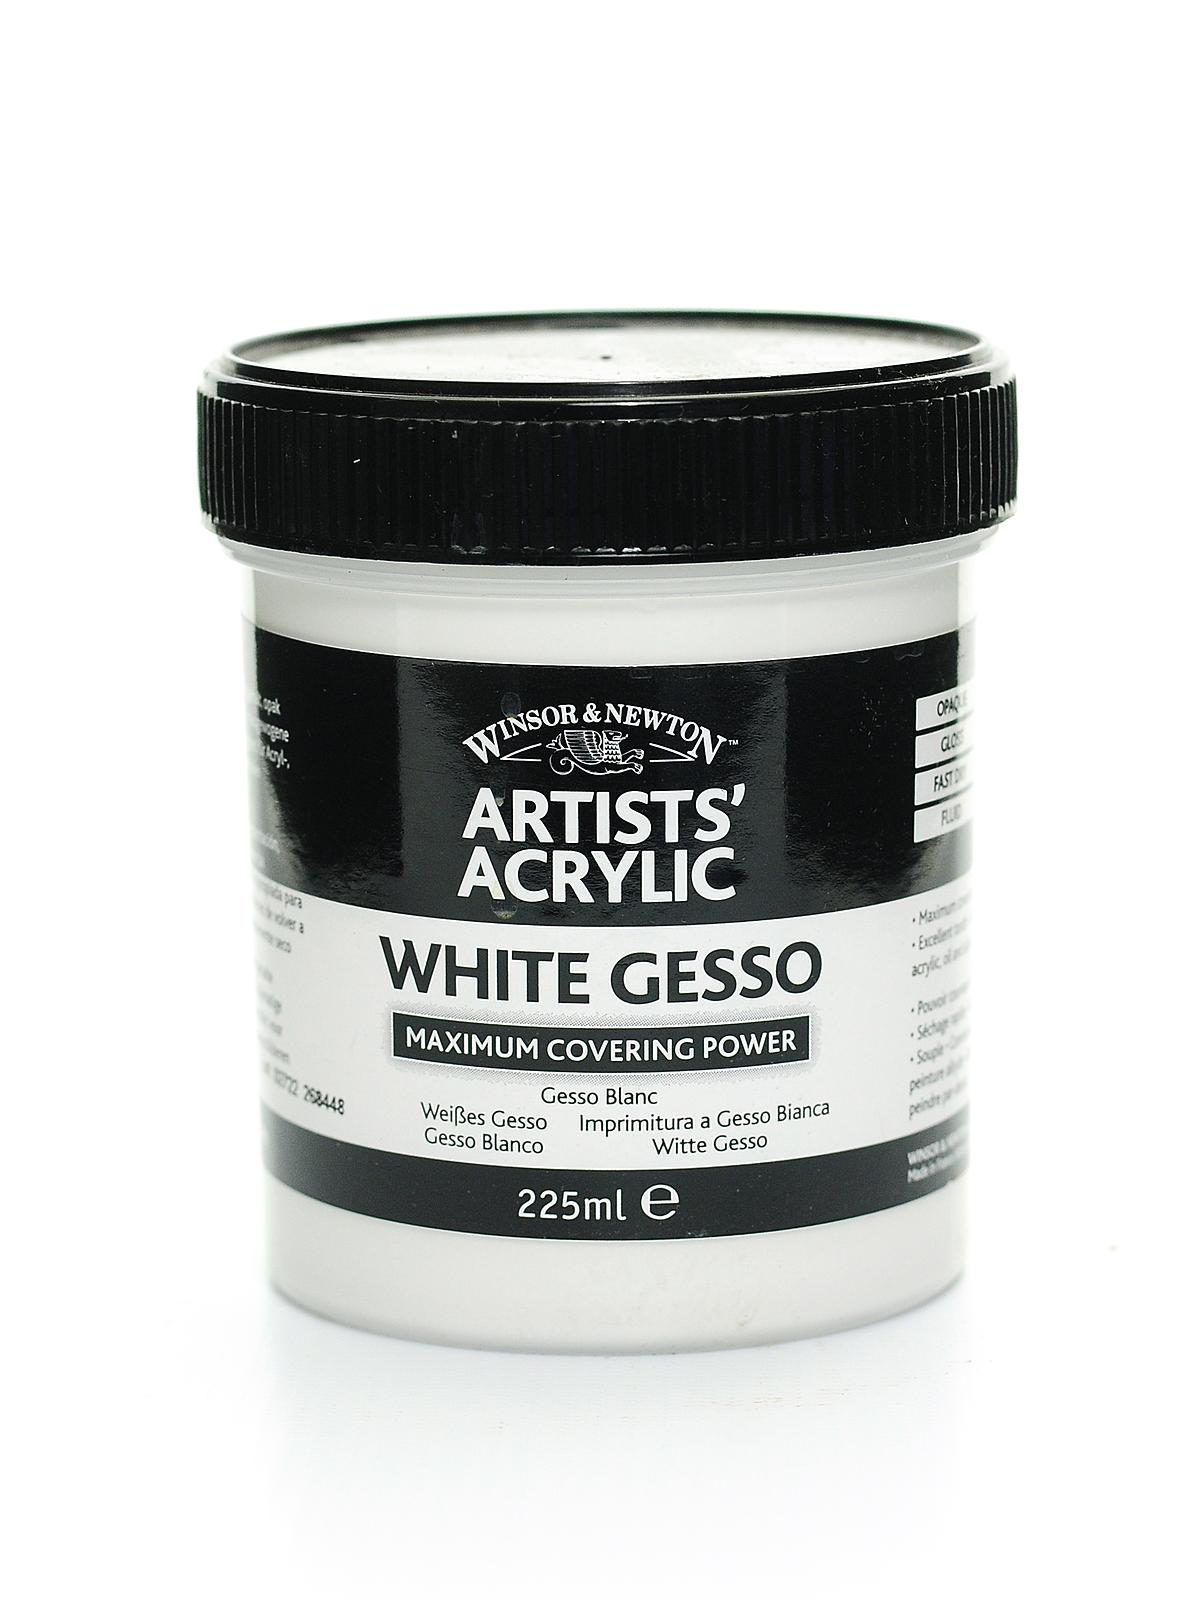 how to use gesso with acrylic paint